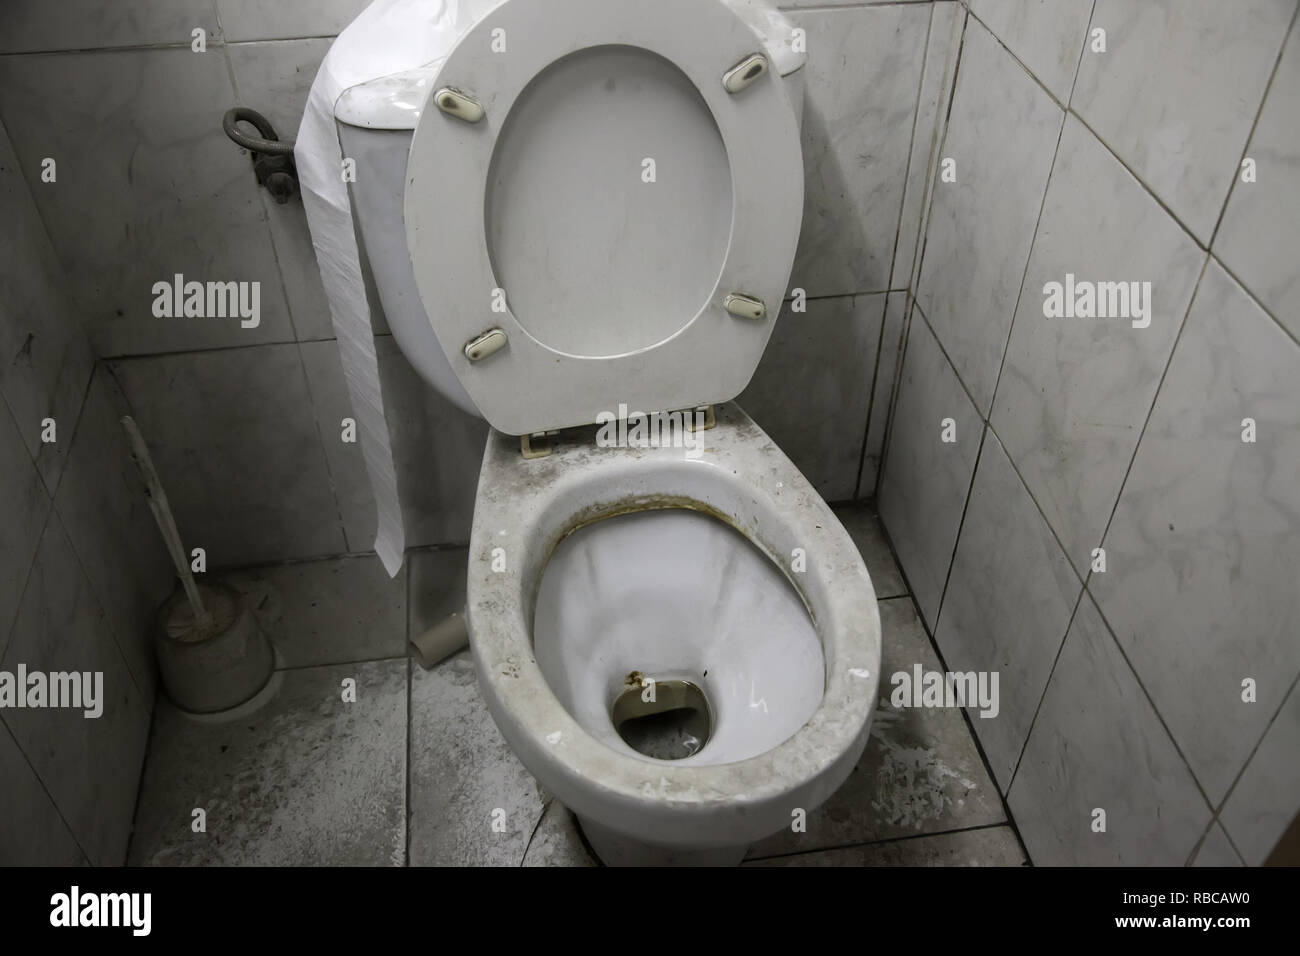 Toilet dirty and full of dust, unhygienic room, abandonment Stock Photo